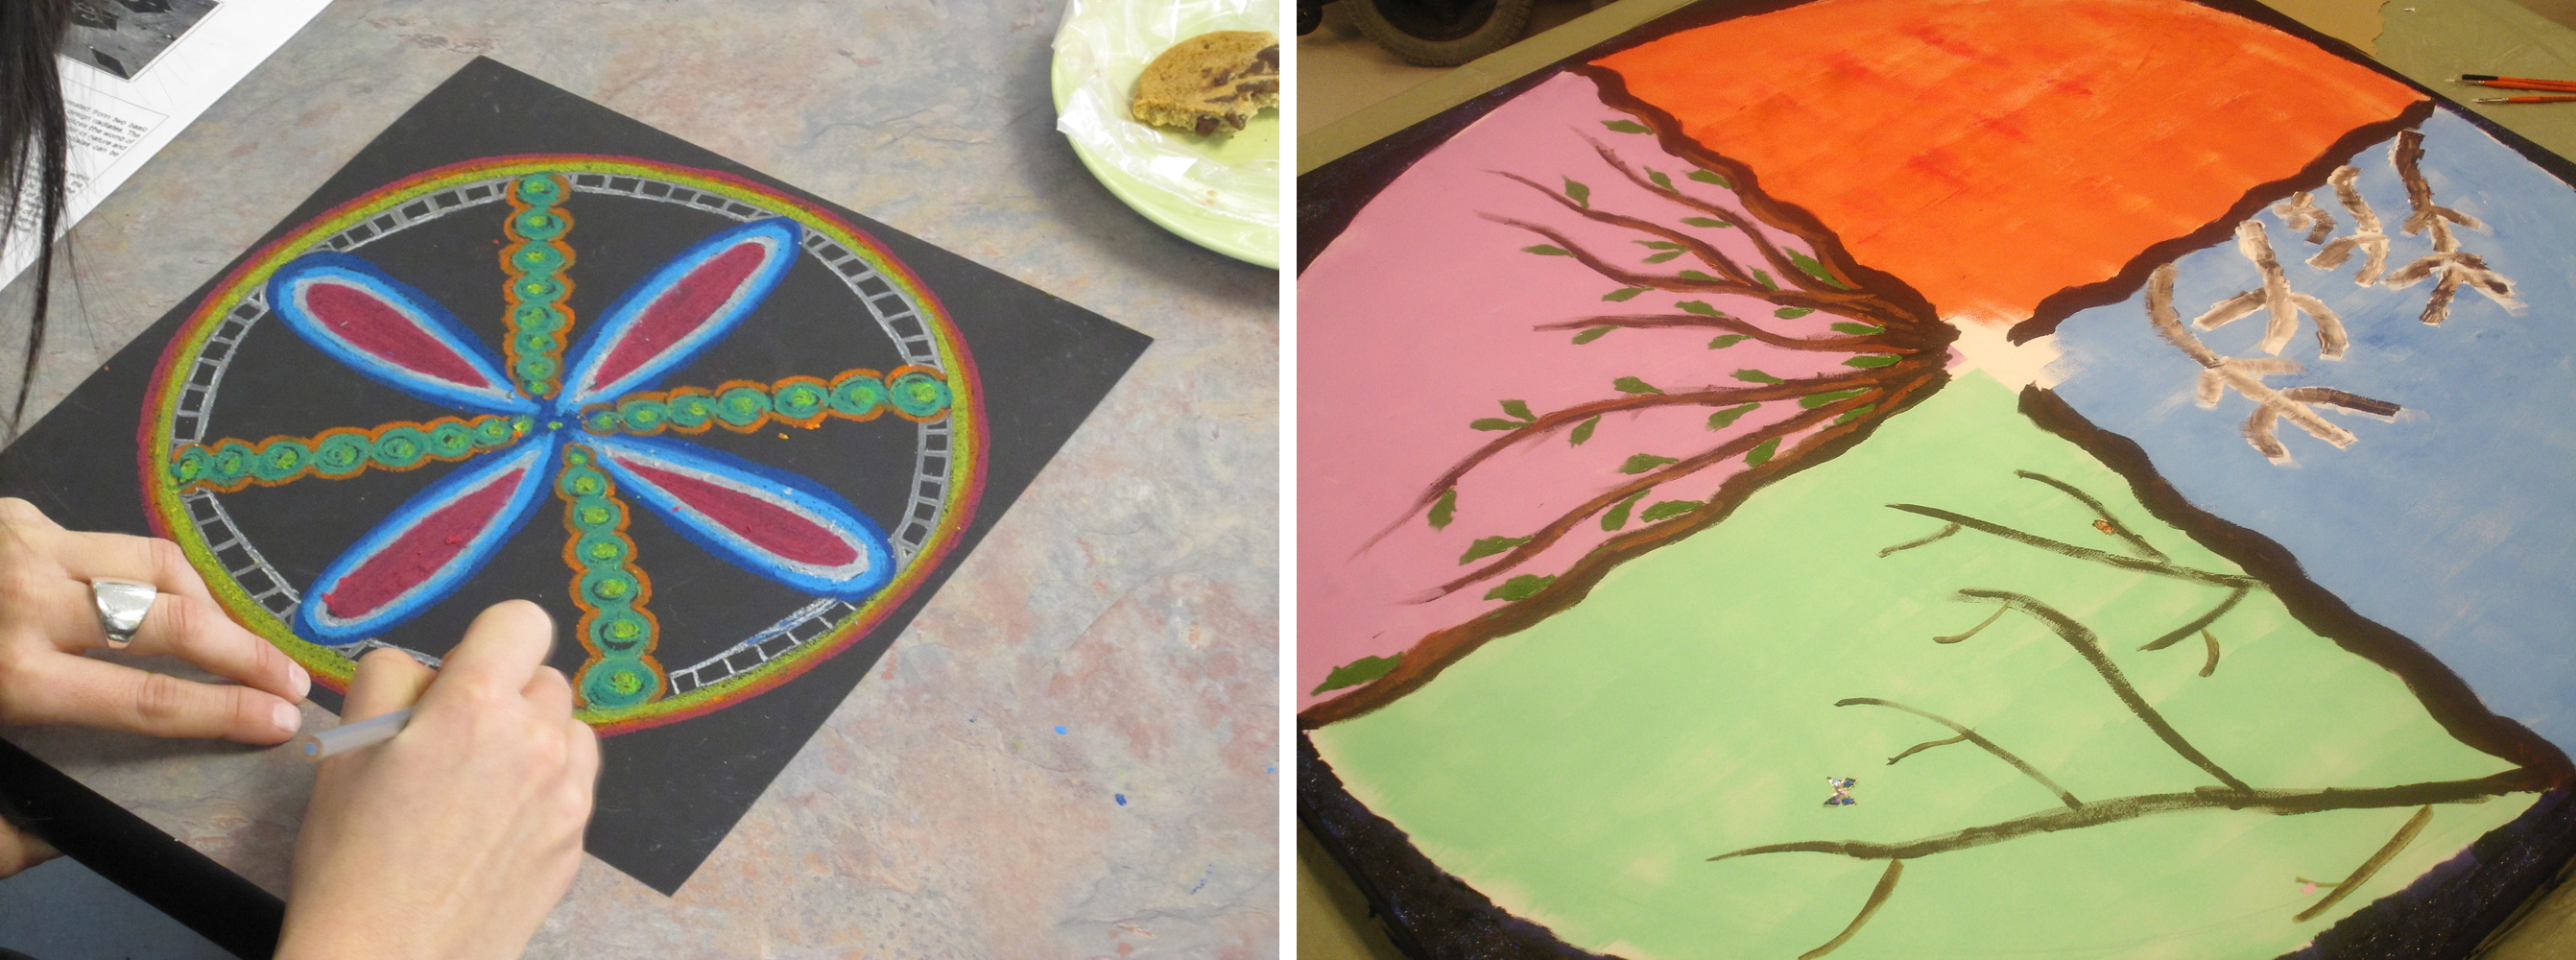 Local groups offer creative approach to mental illness